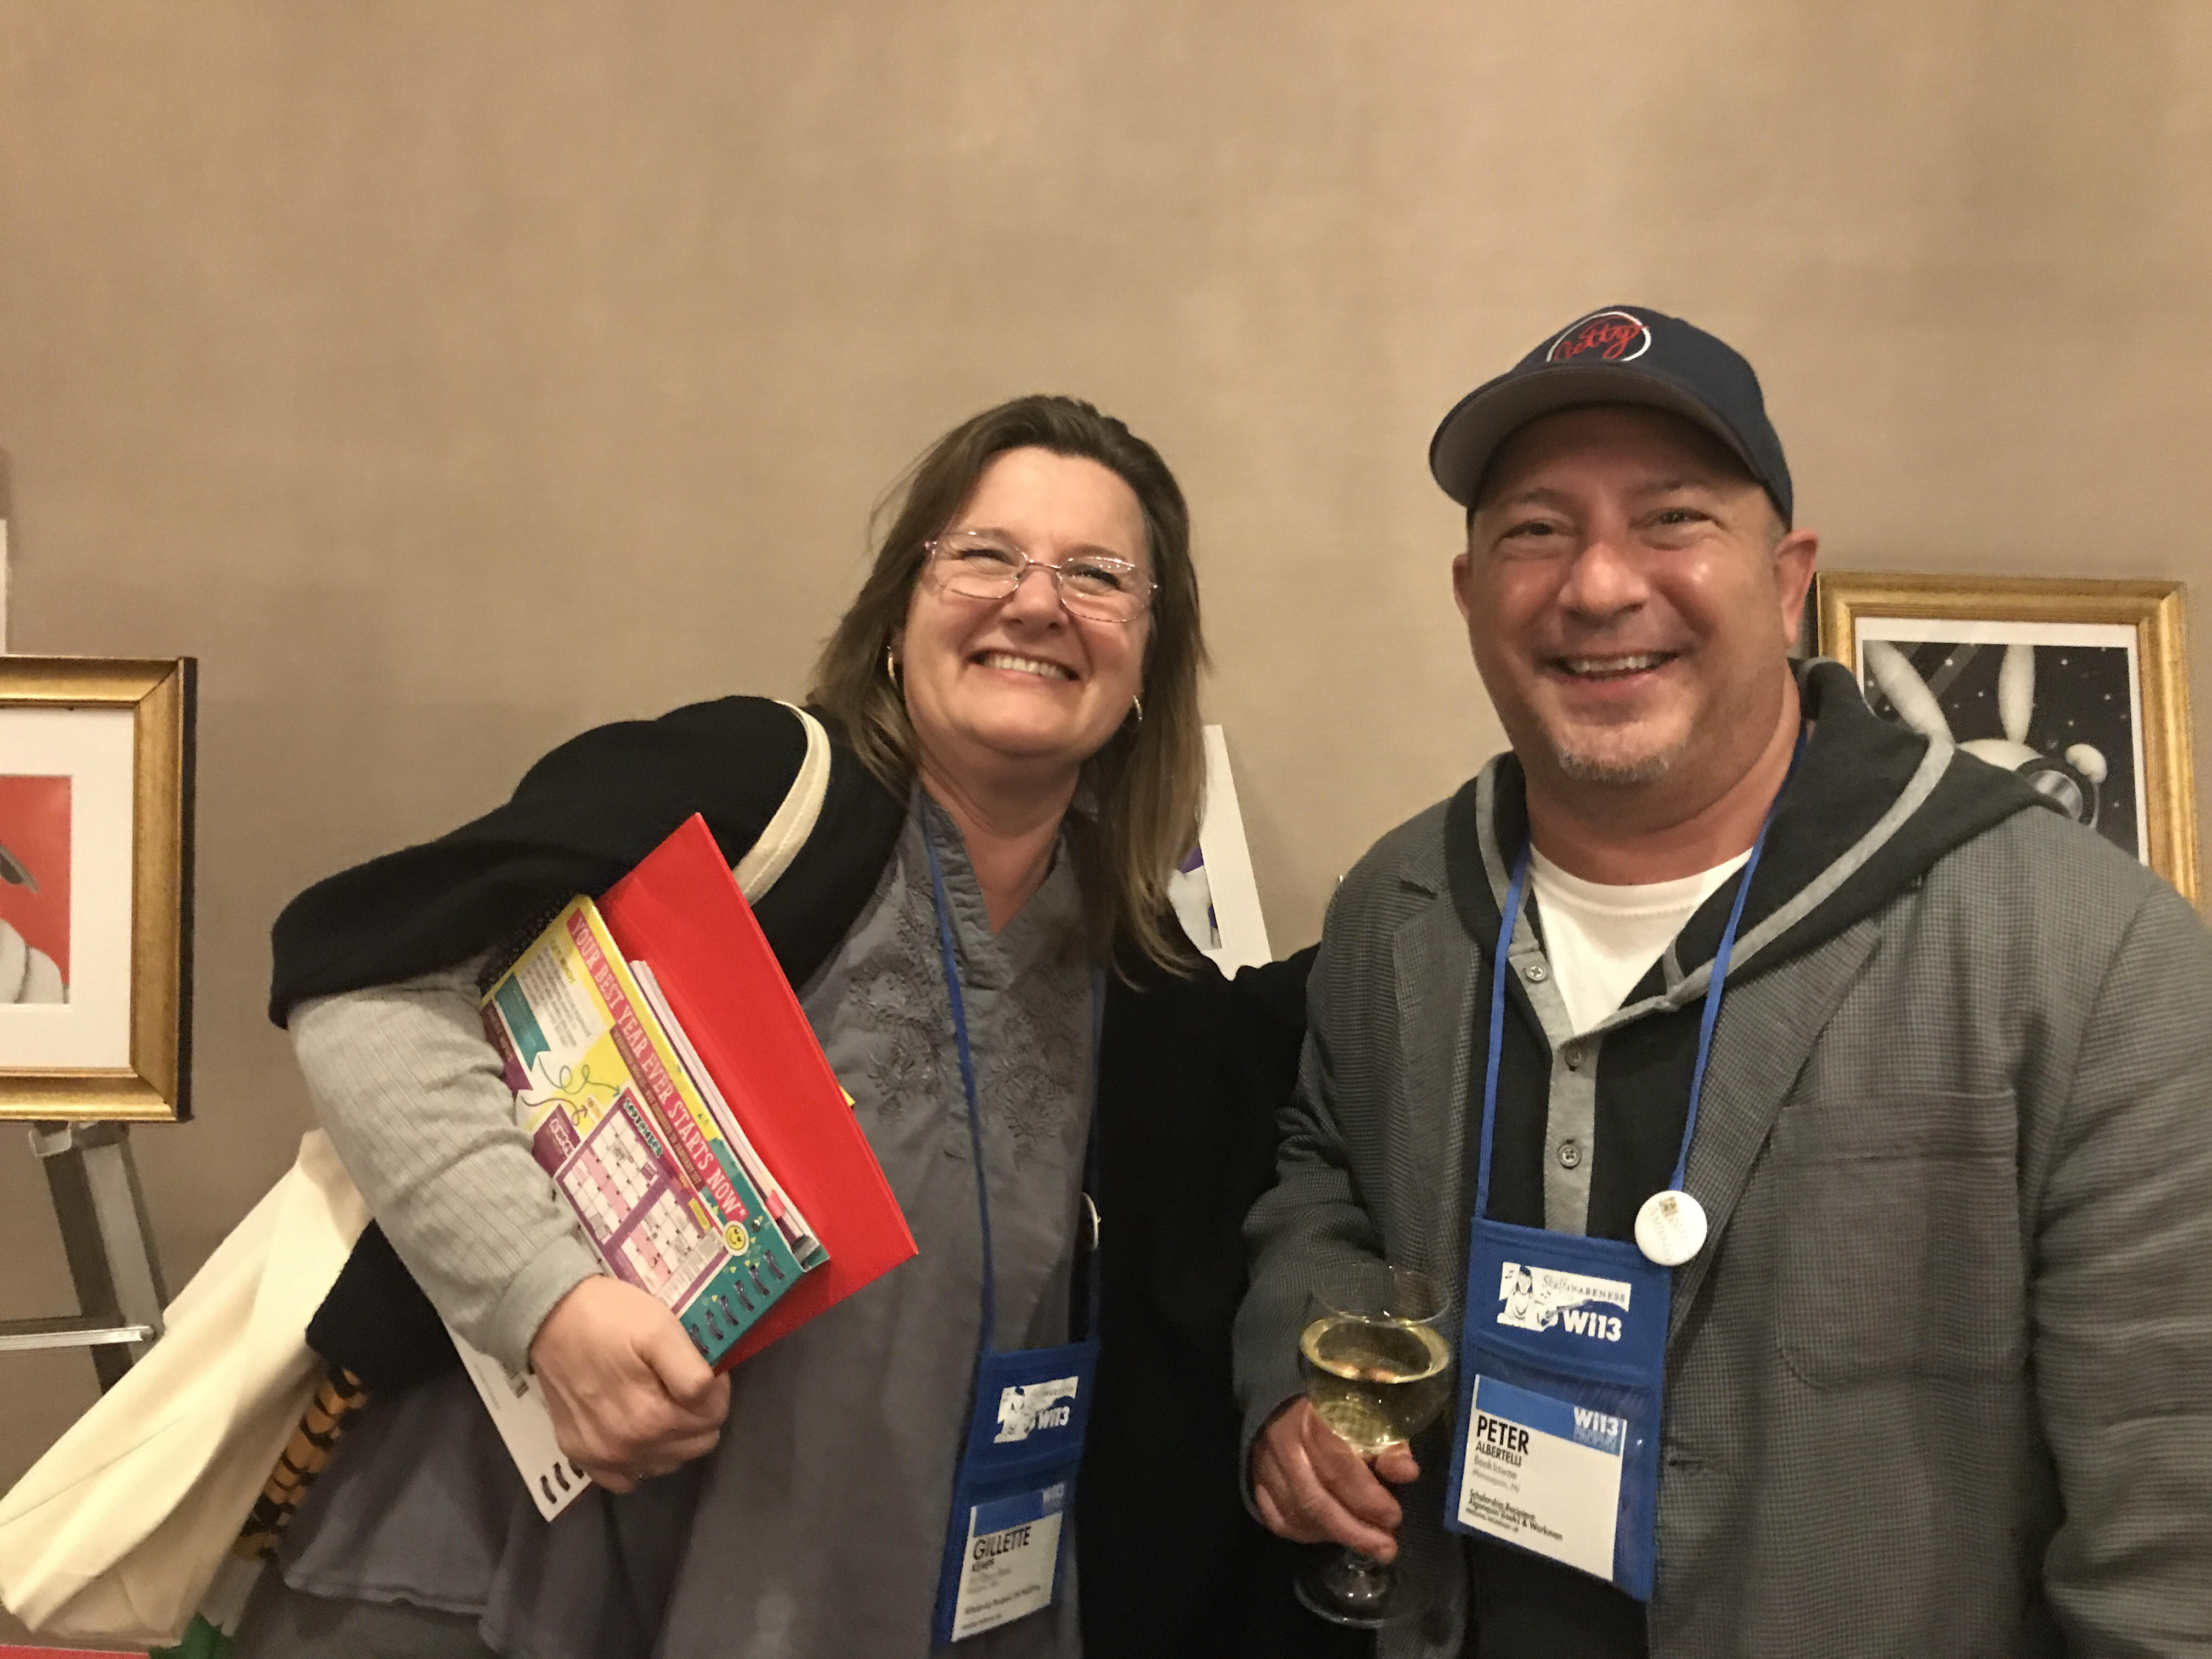 Gillette Kempf renews her friendship with fellow bookseller Peter Albertelli at the Scholastic party.